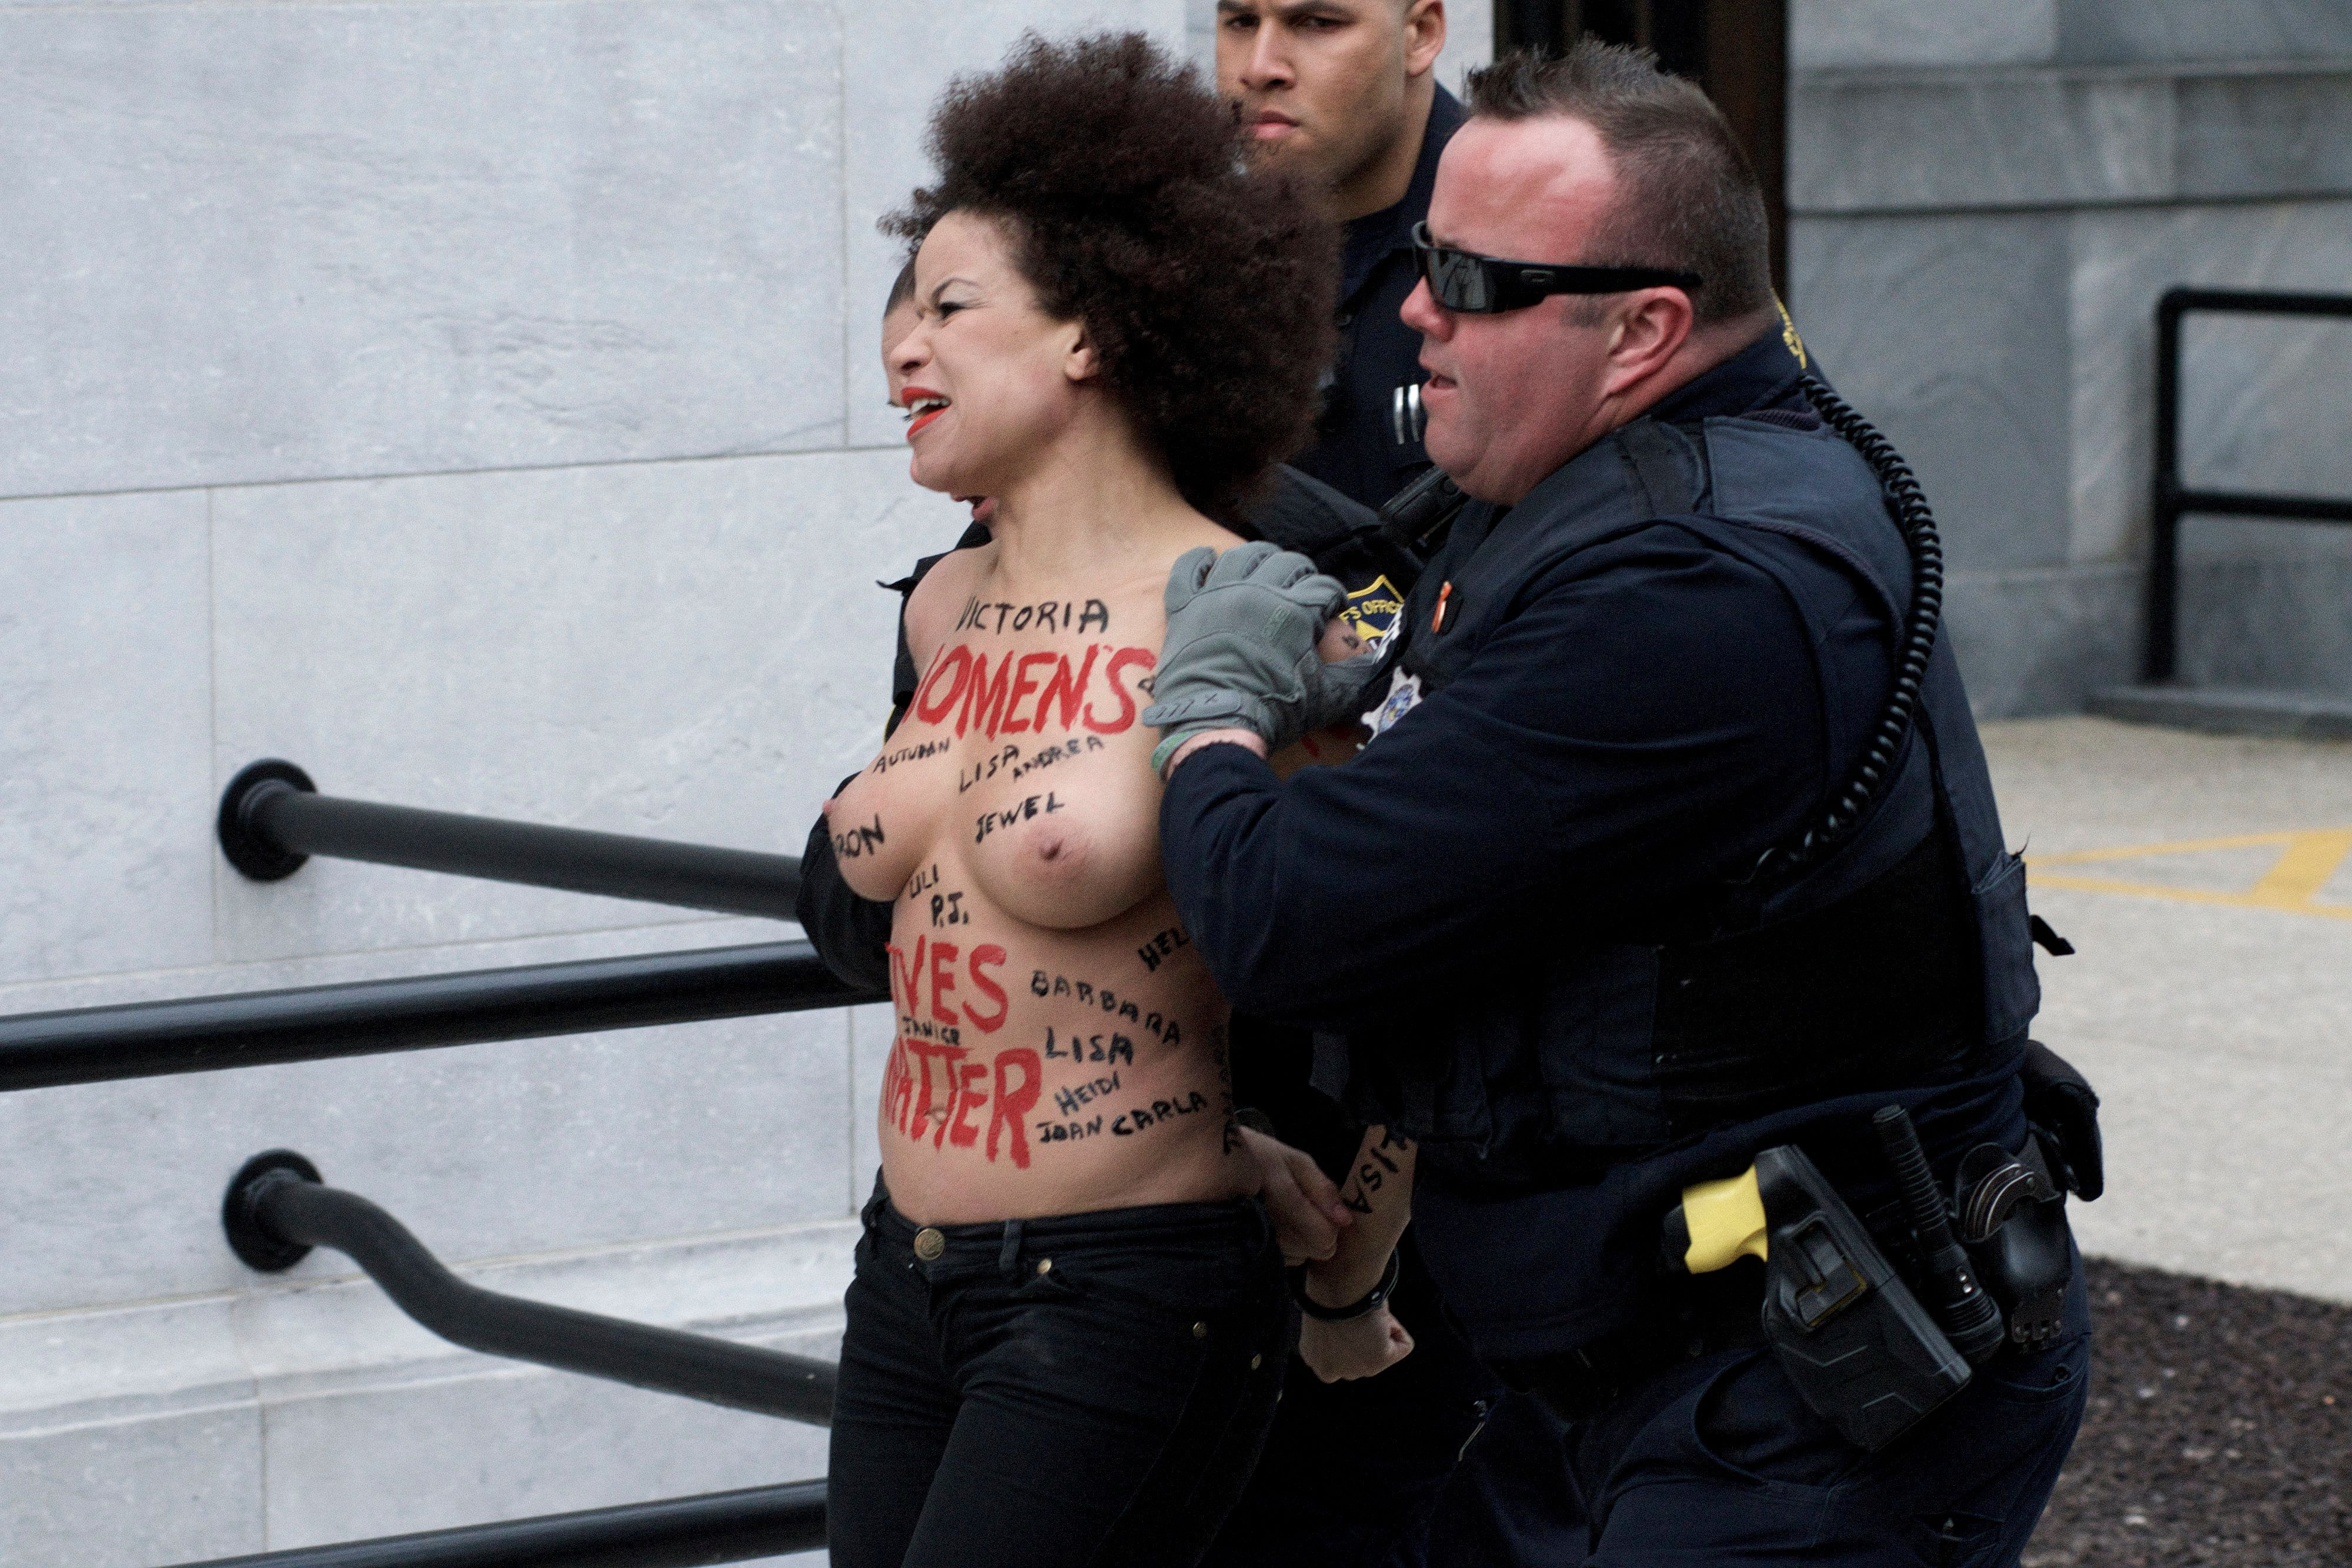 (EDITORS NOTE: Image contains nudity and graphic content.) A Protestor disturb the scene as Bill Cosby returns to Montgomery County Courthouse, in Norristown, PA on April 9, 2018 ahead of the sexual assault retail against the 80 year old actor and comedian. (Photo by Bastiaan Slabbers/NurPhoto via Getty Images)